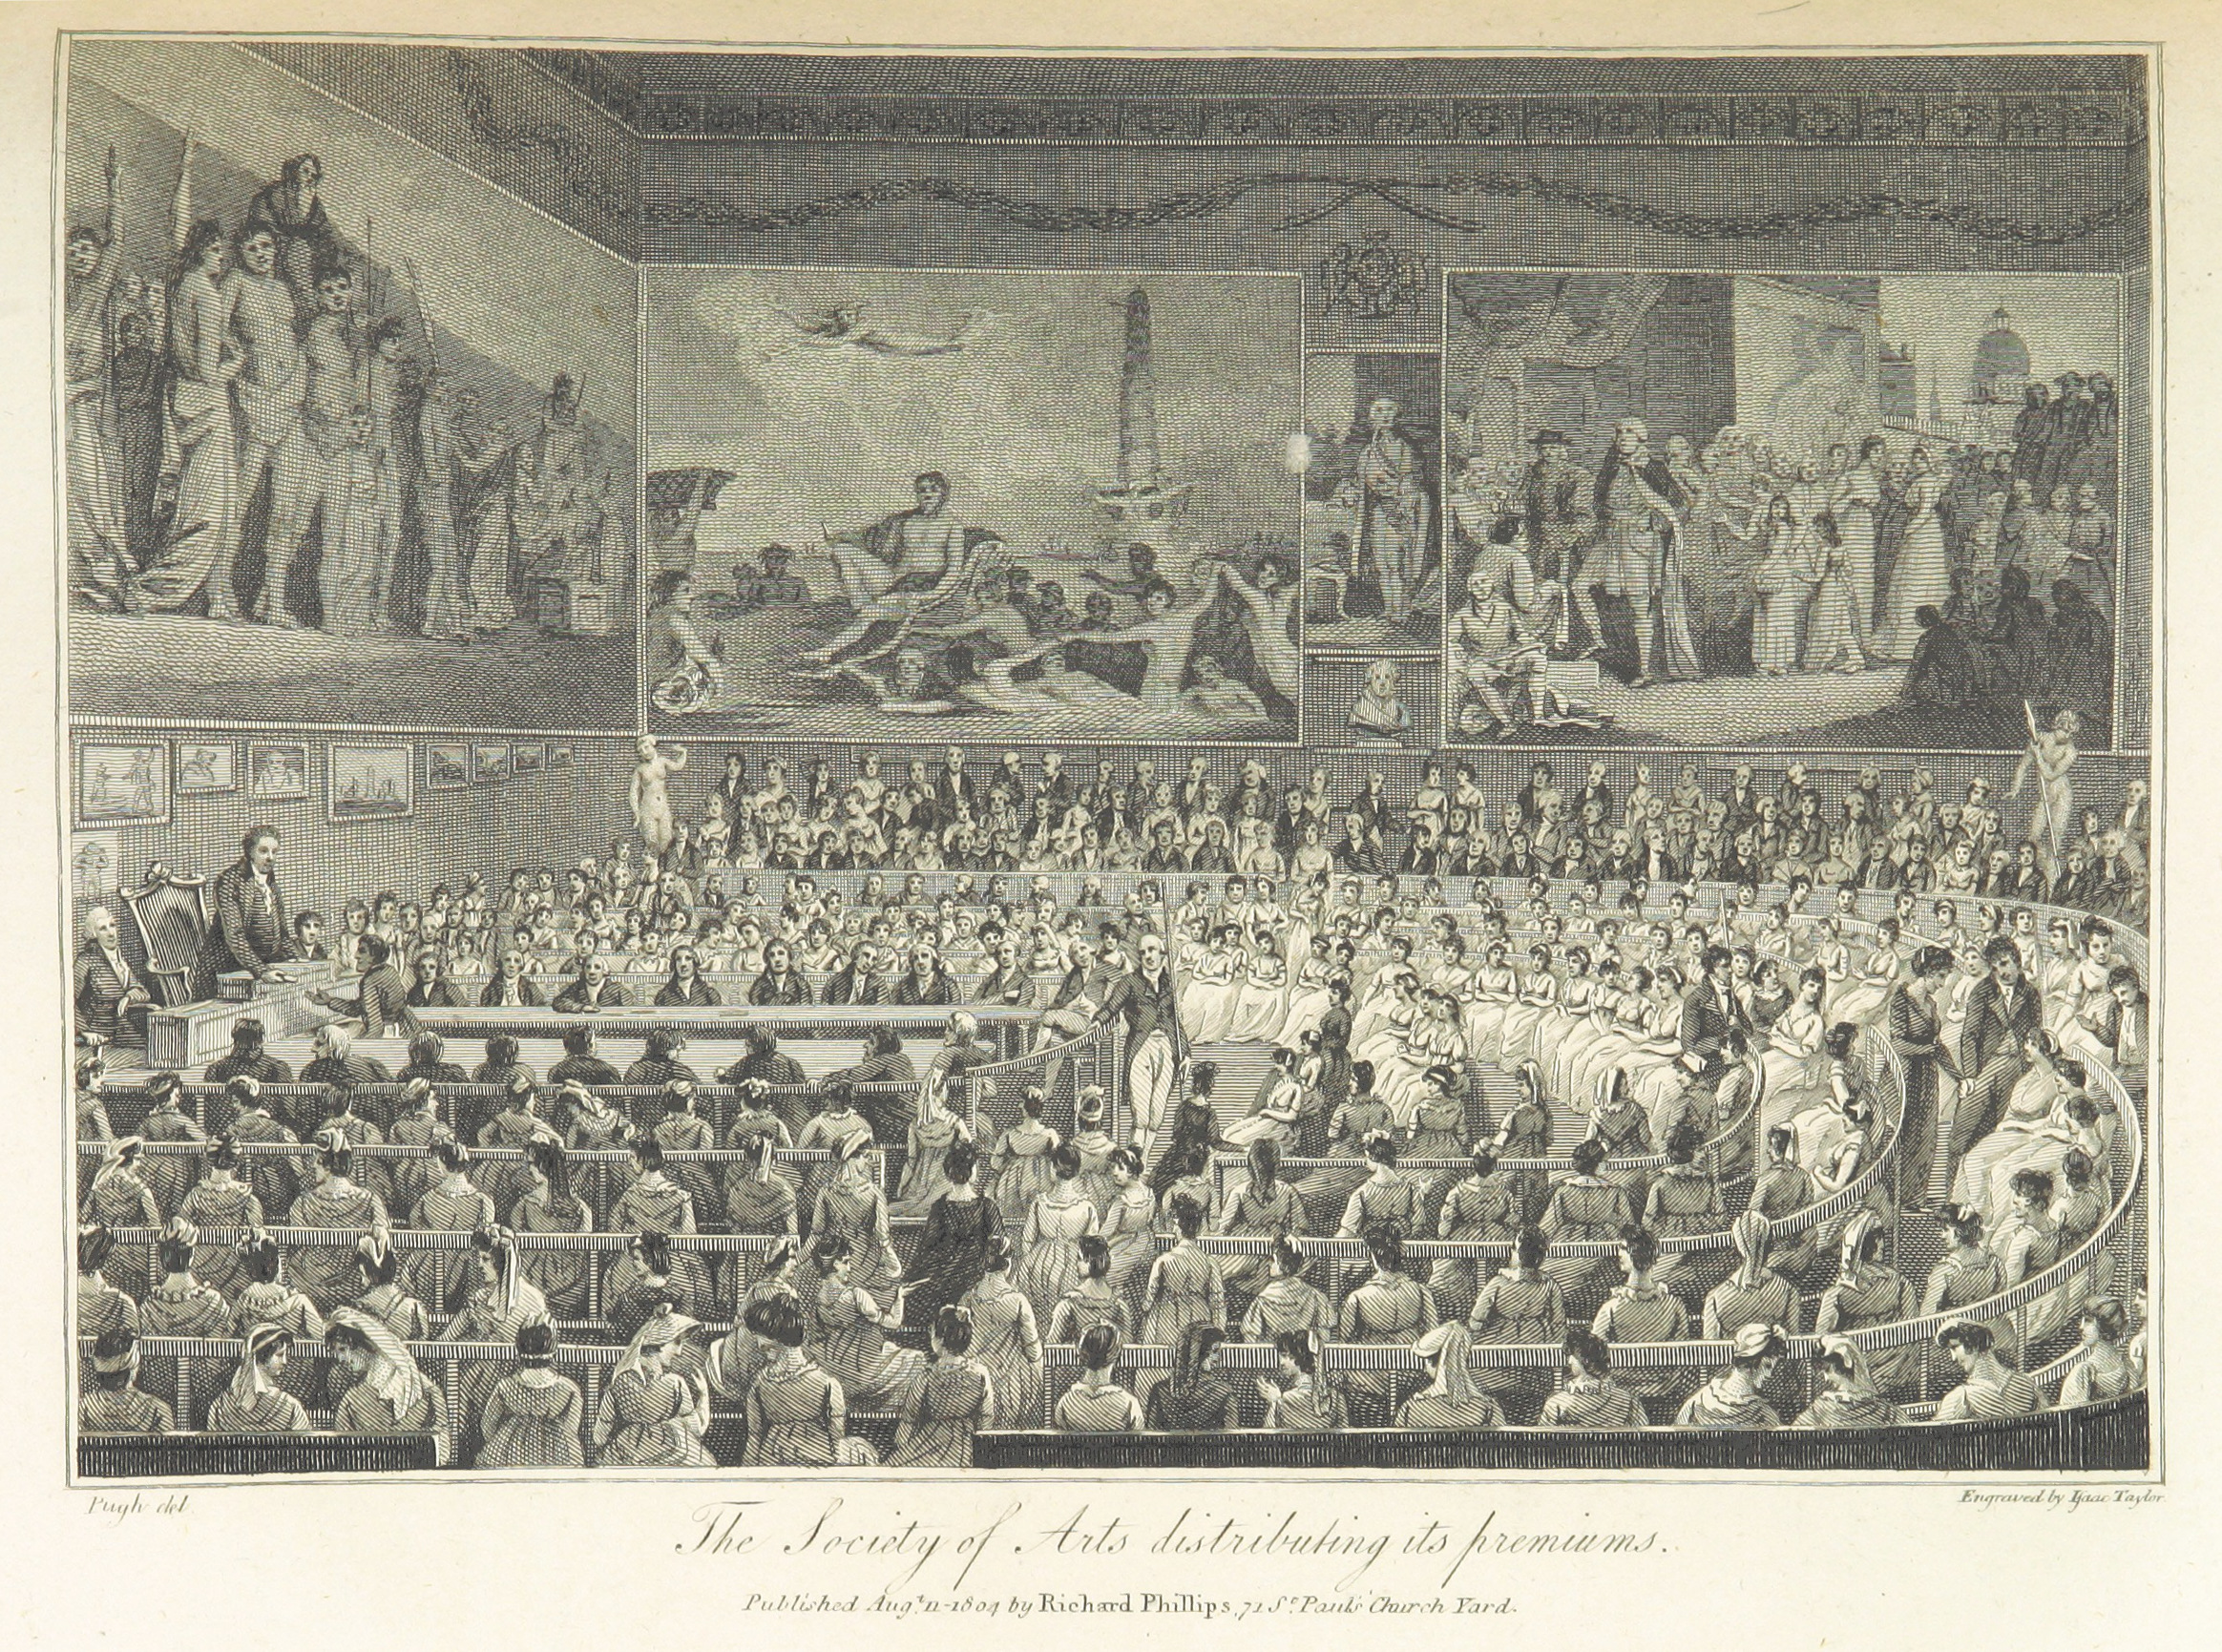 Phillips(1804)_p447_-_The_Society_of_Arts_distributing_its_premiums